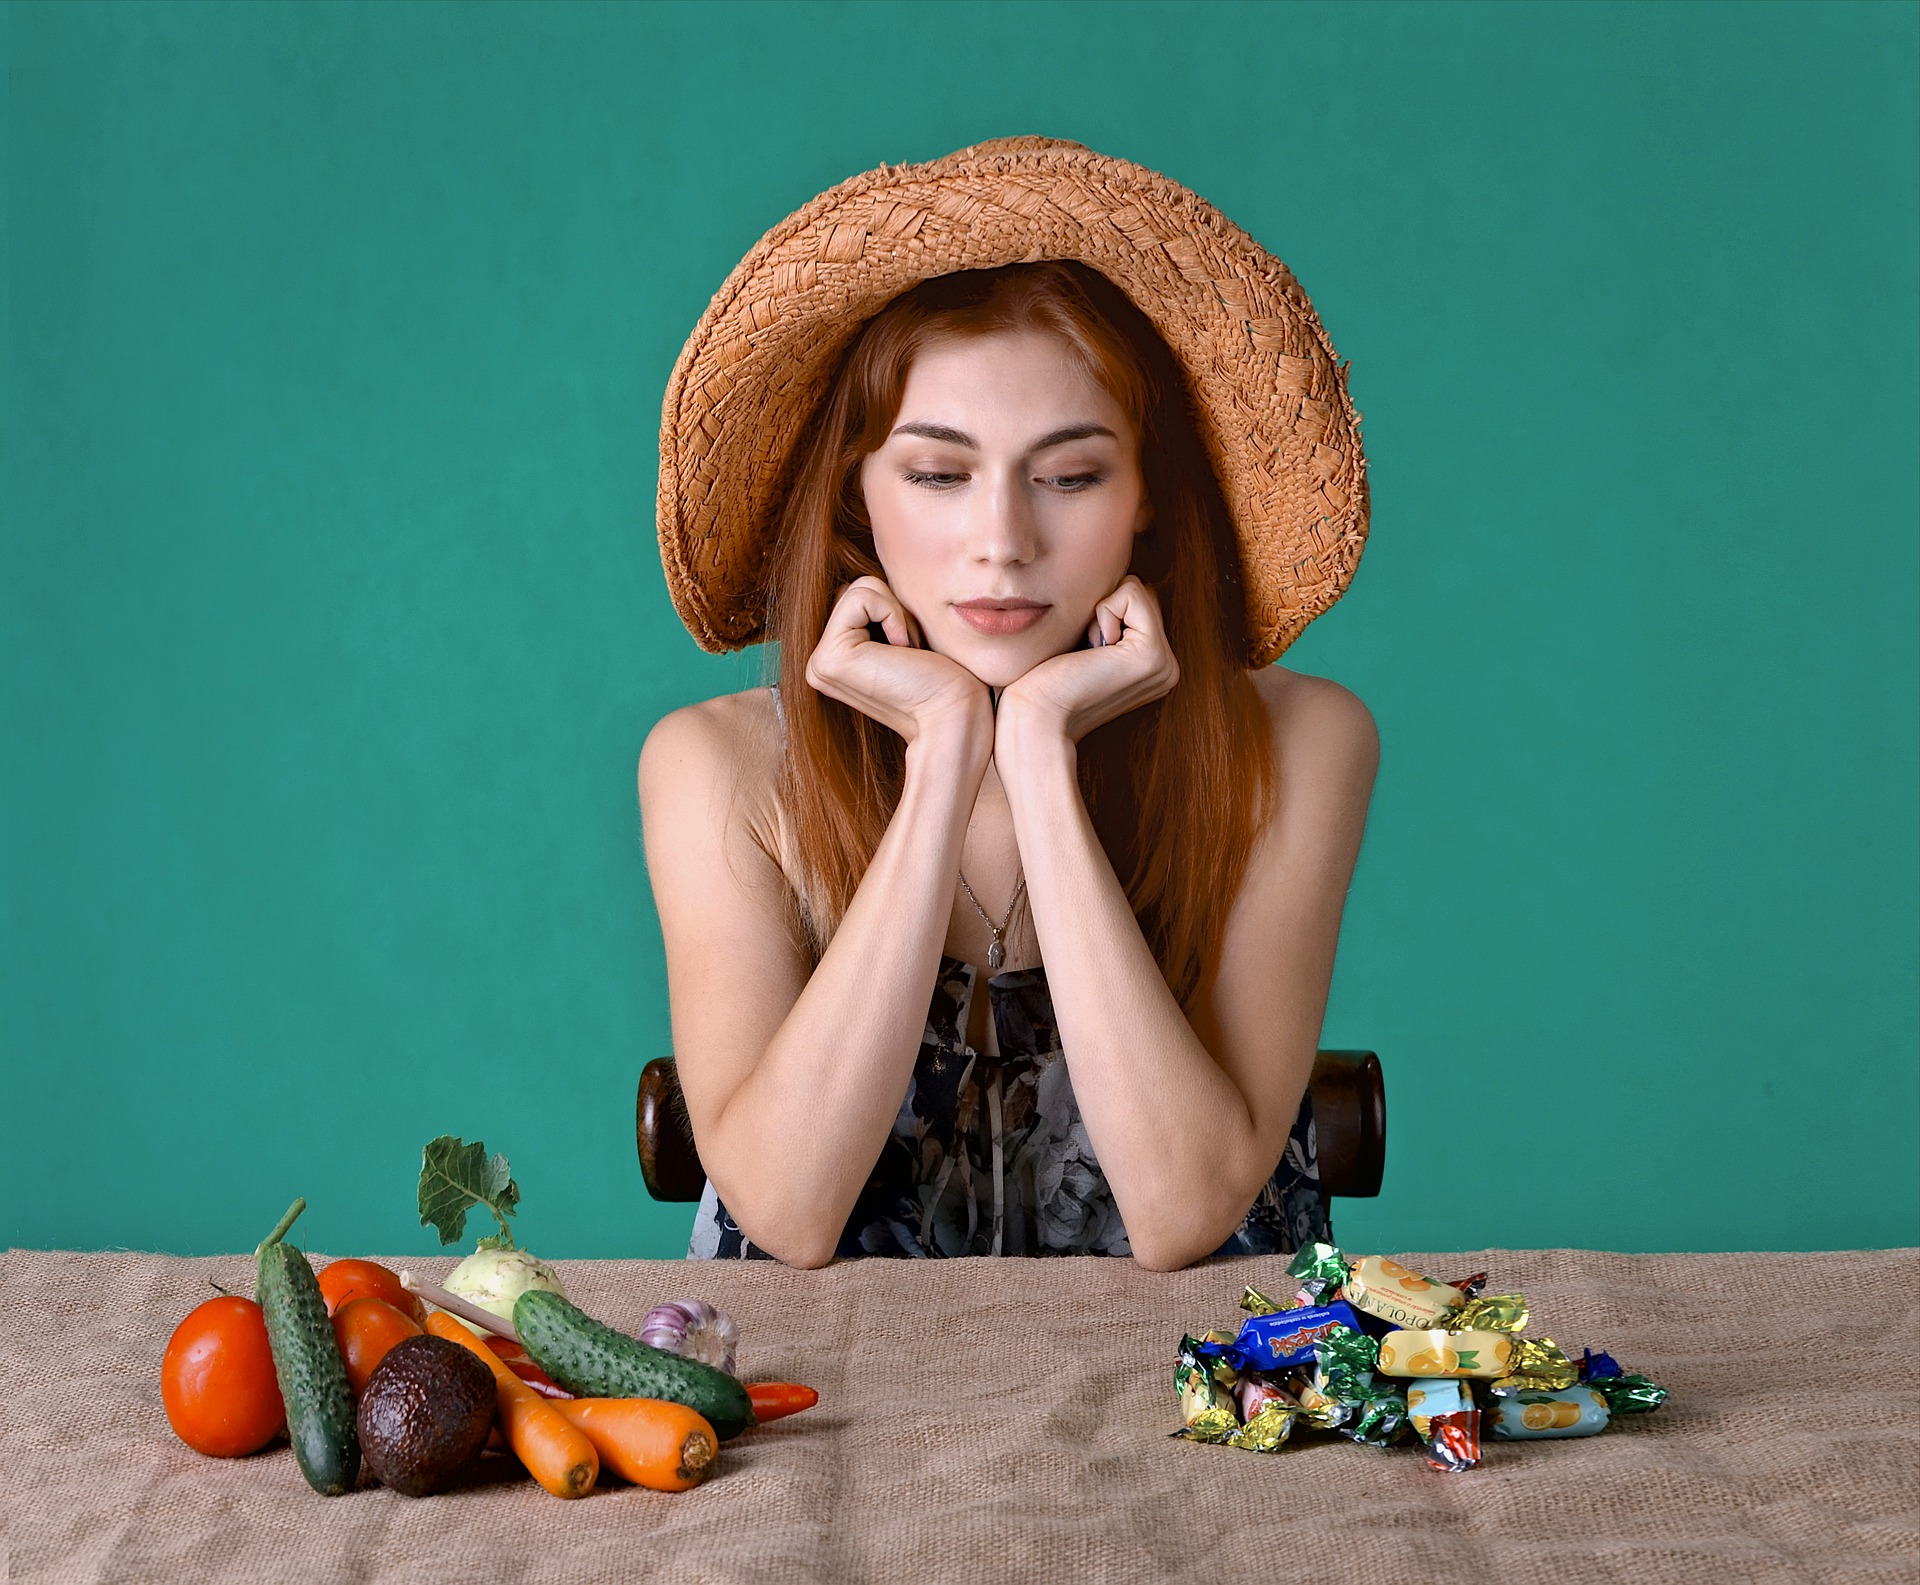 woman choosing between vegetables and candy